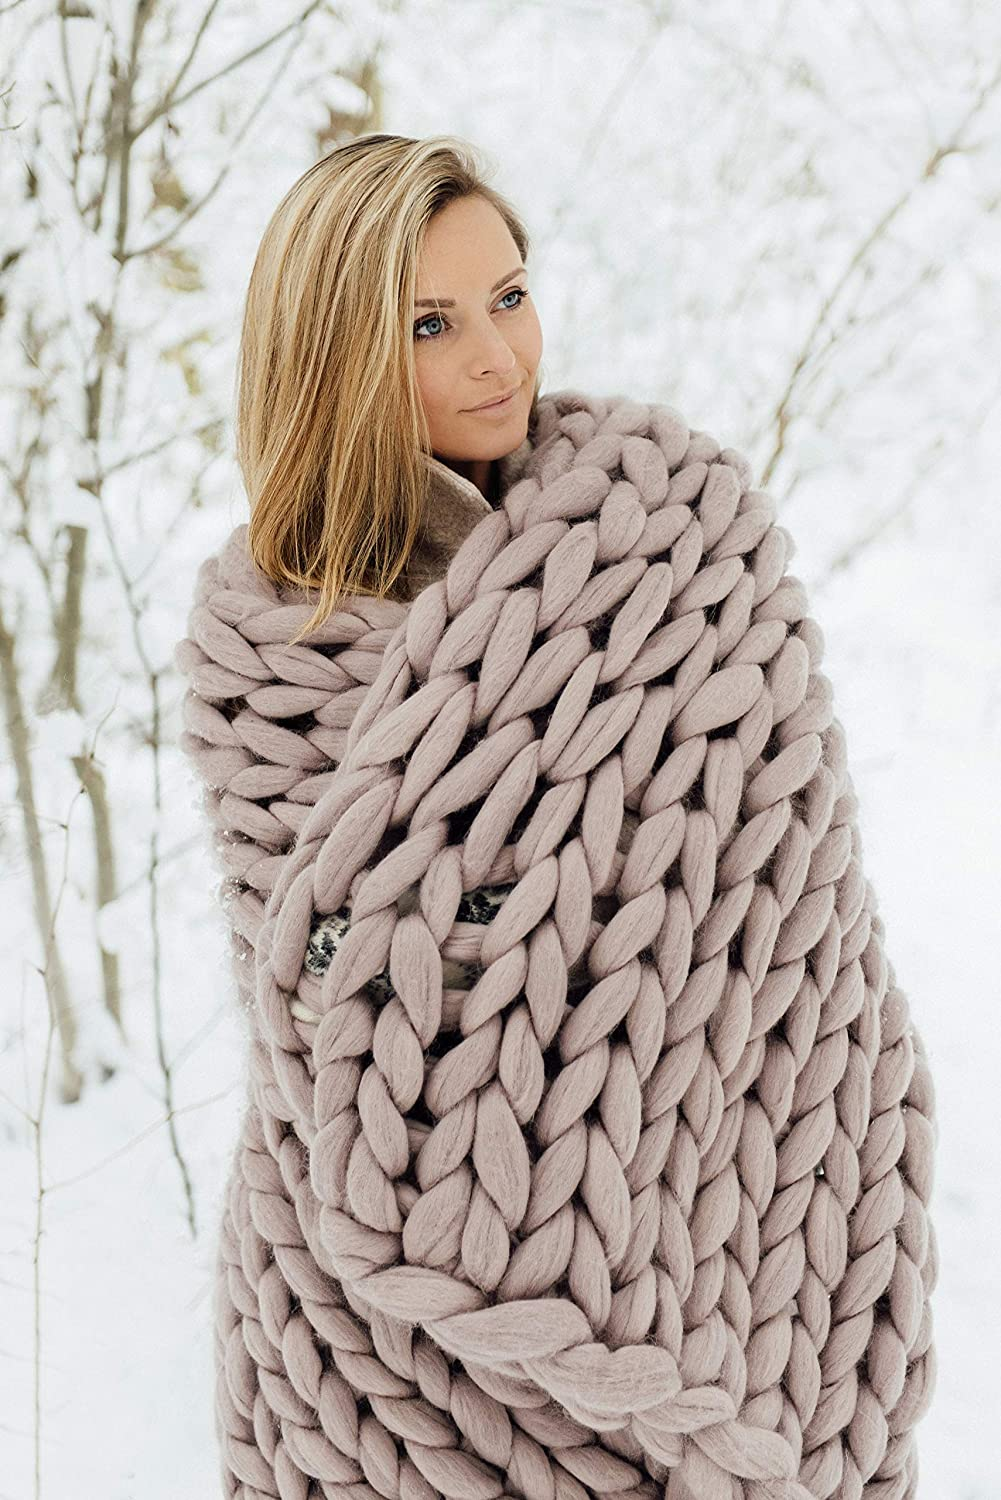 knitted blanket blanket throw chunky knitted blanket throw blanket Chunky knit blanket Merino wool blanket, chunky knits Throw